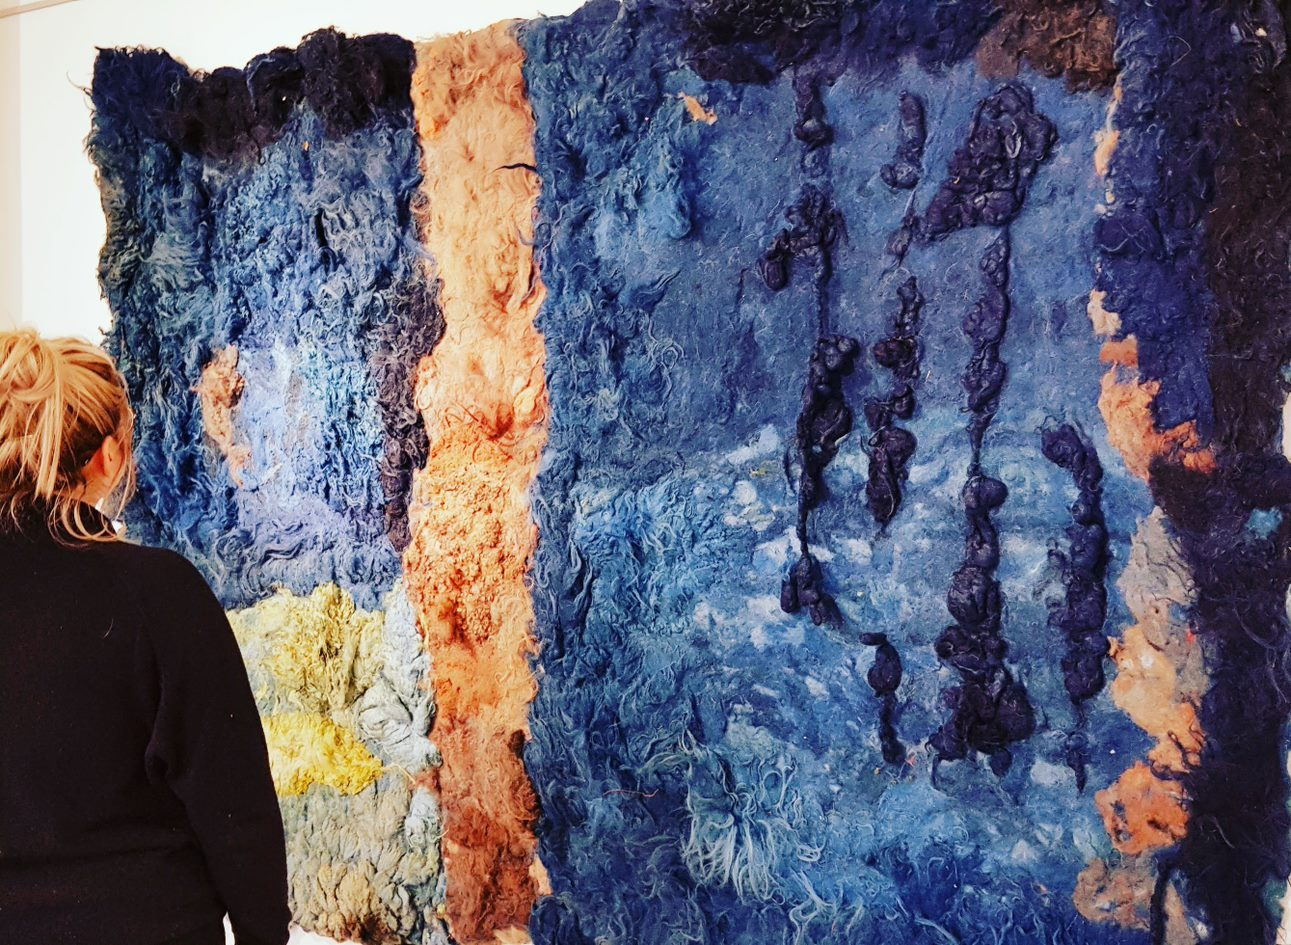 A woman stands in front of a large piece of orange and blue textured fabric